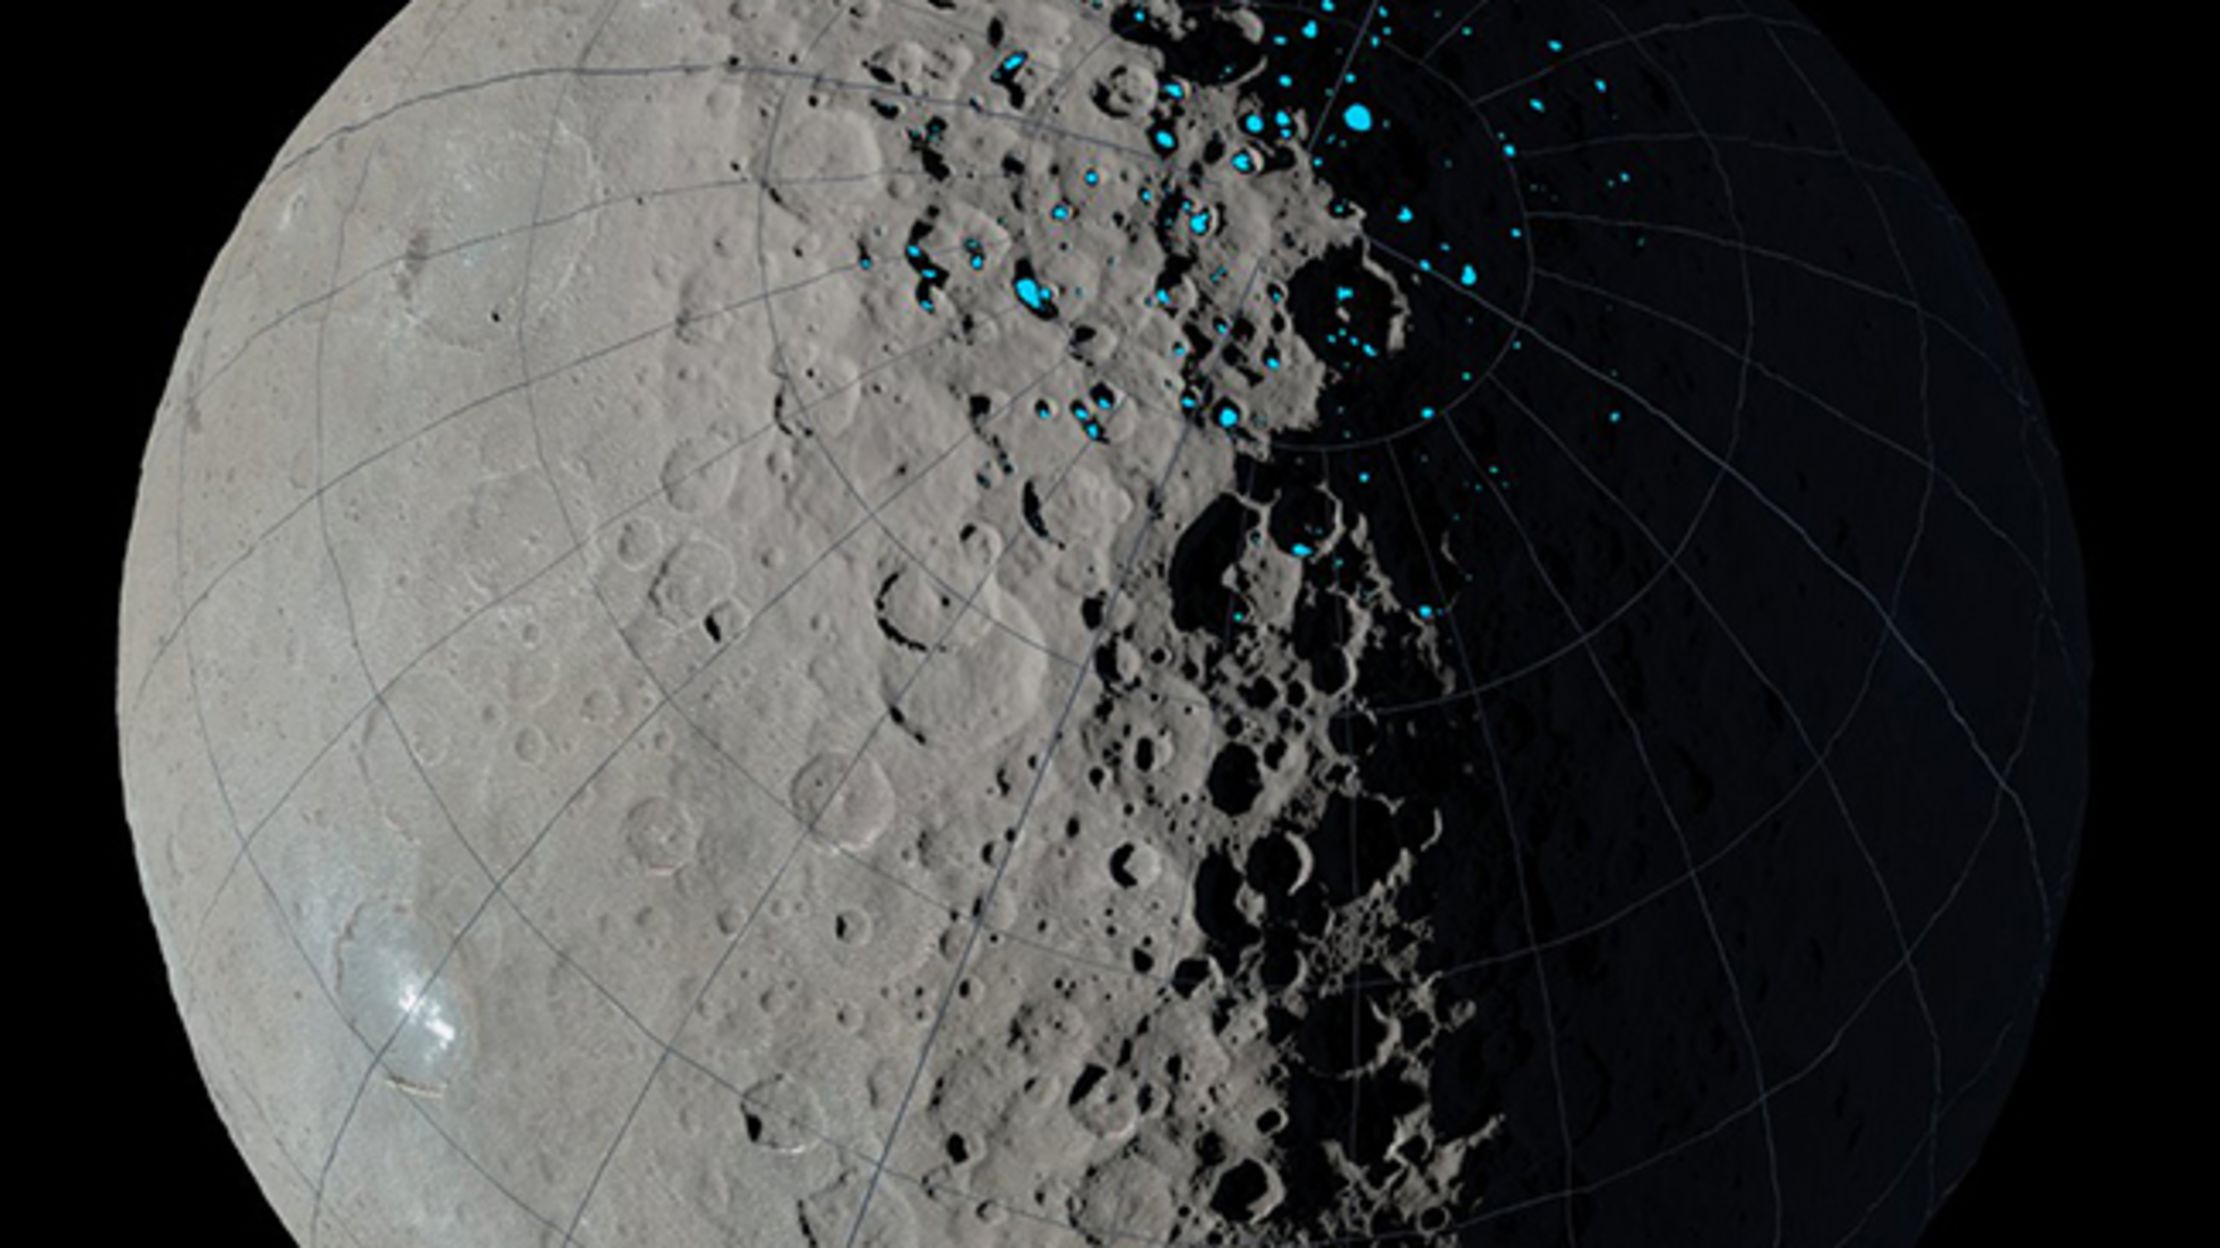 Ceres crown cover image